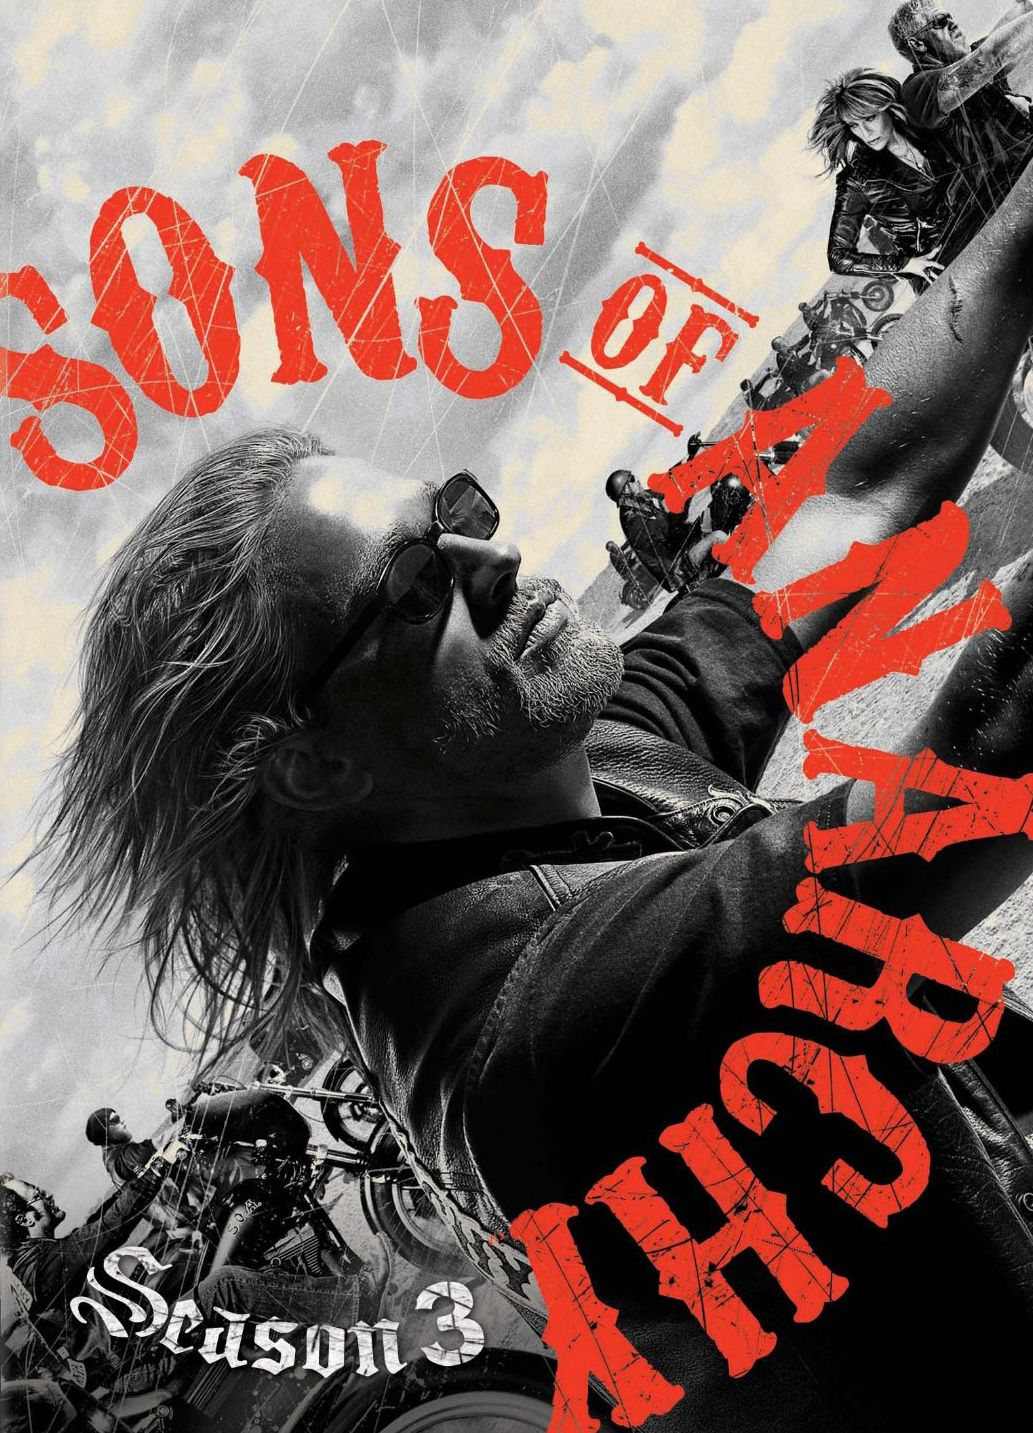 Sons of Anarchy S03 720p BluRay